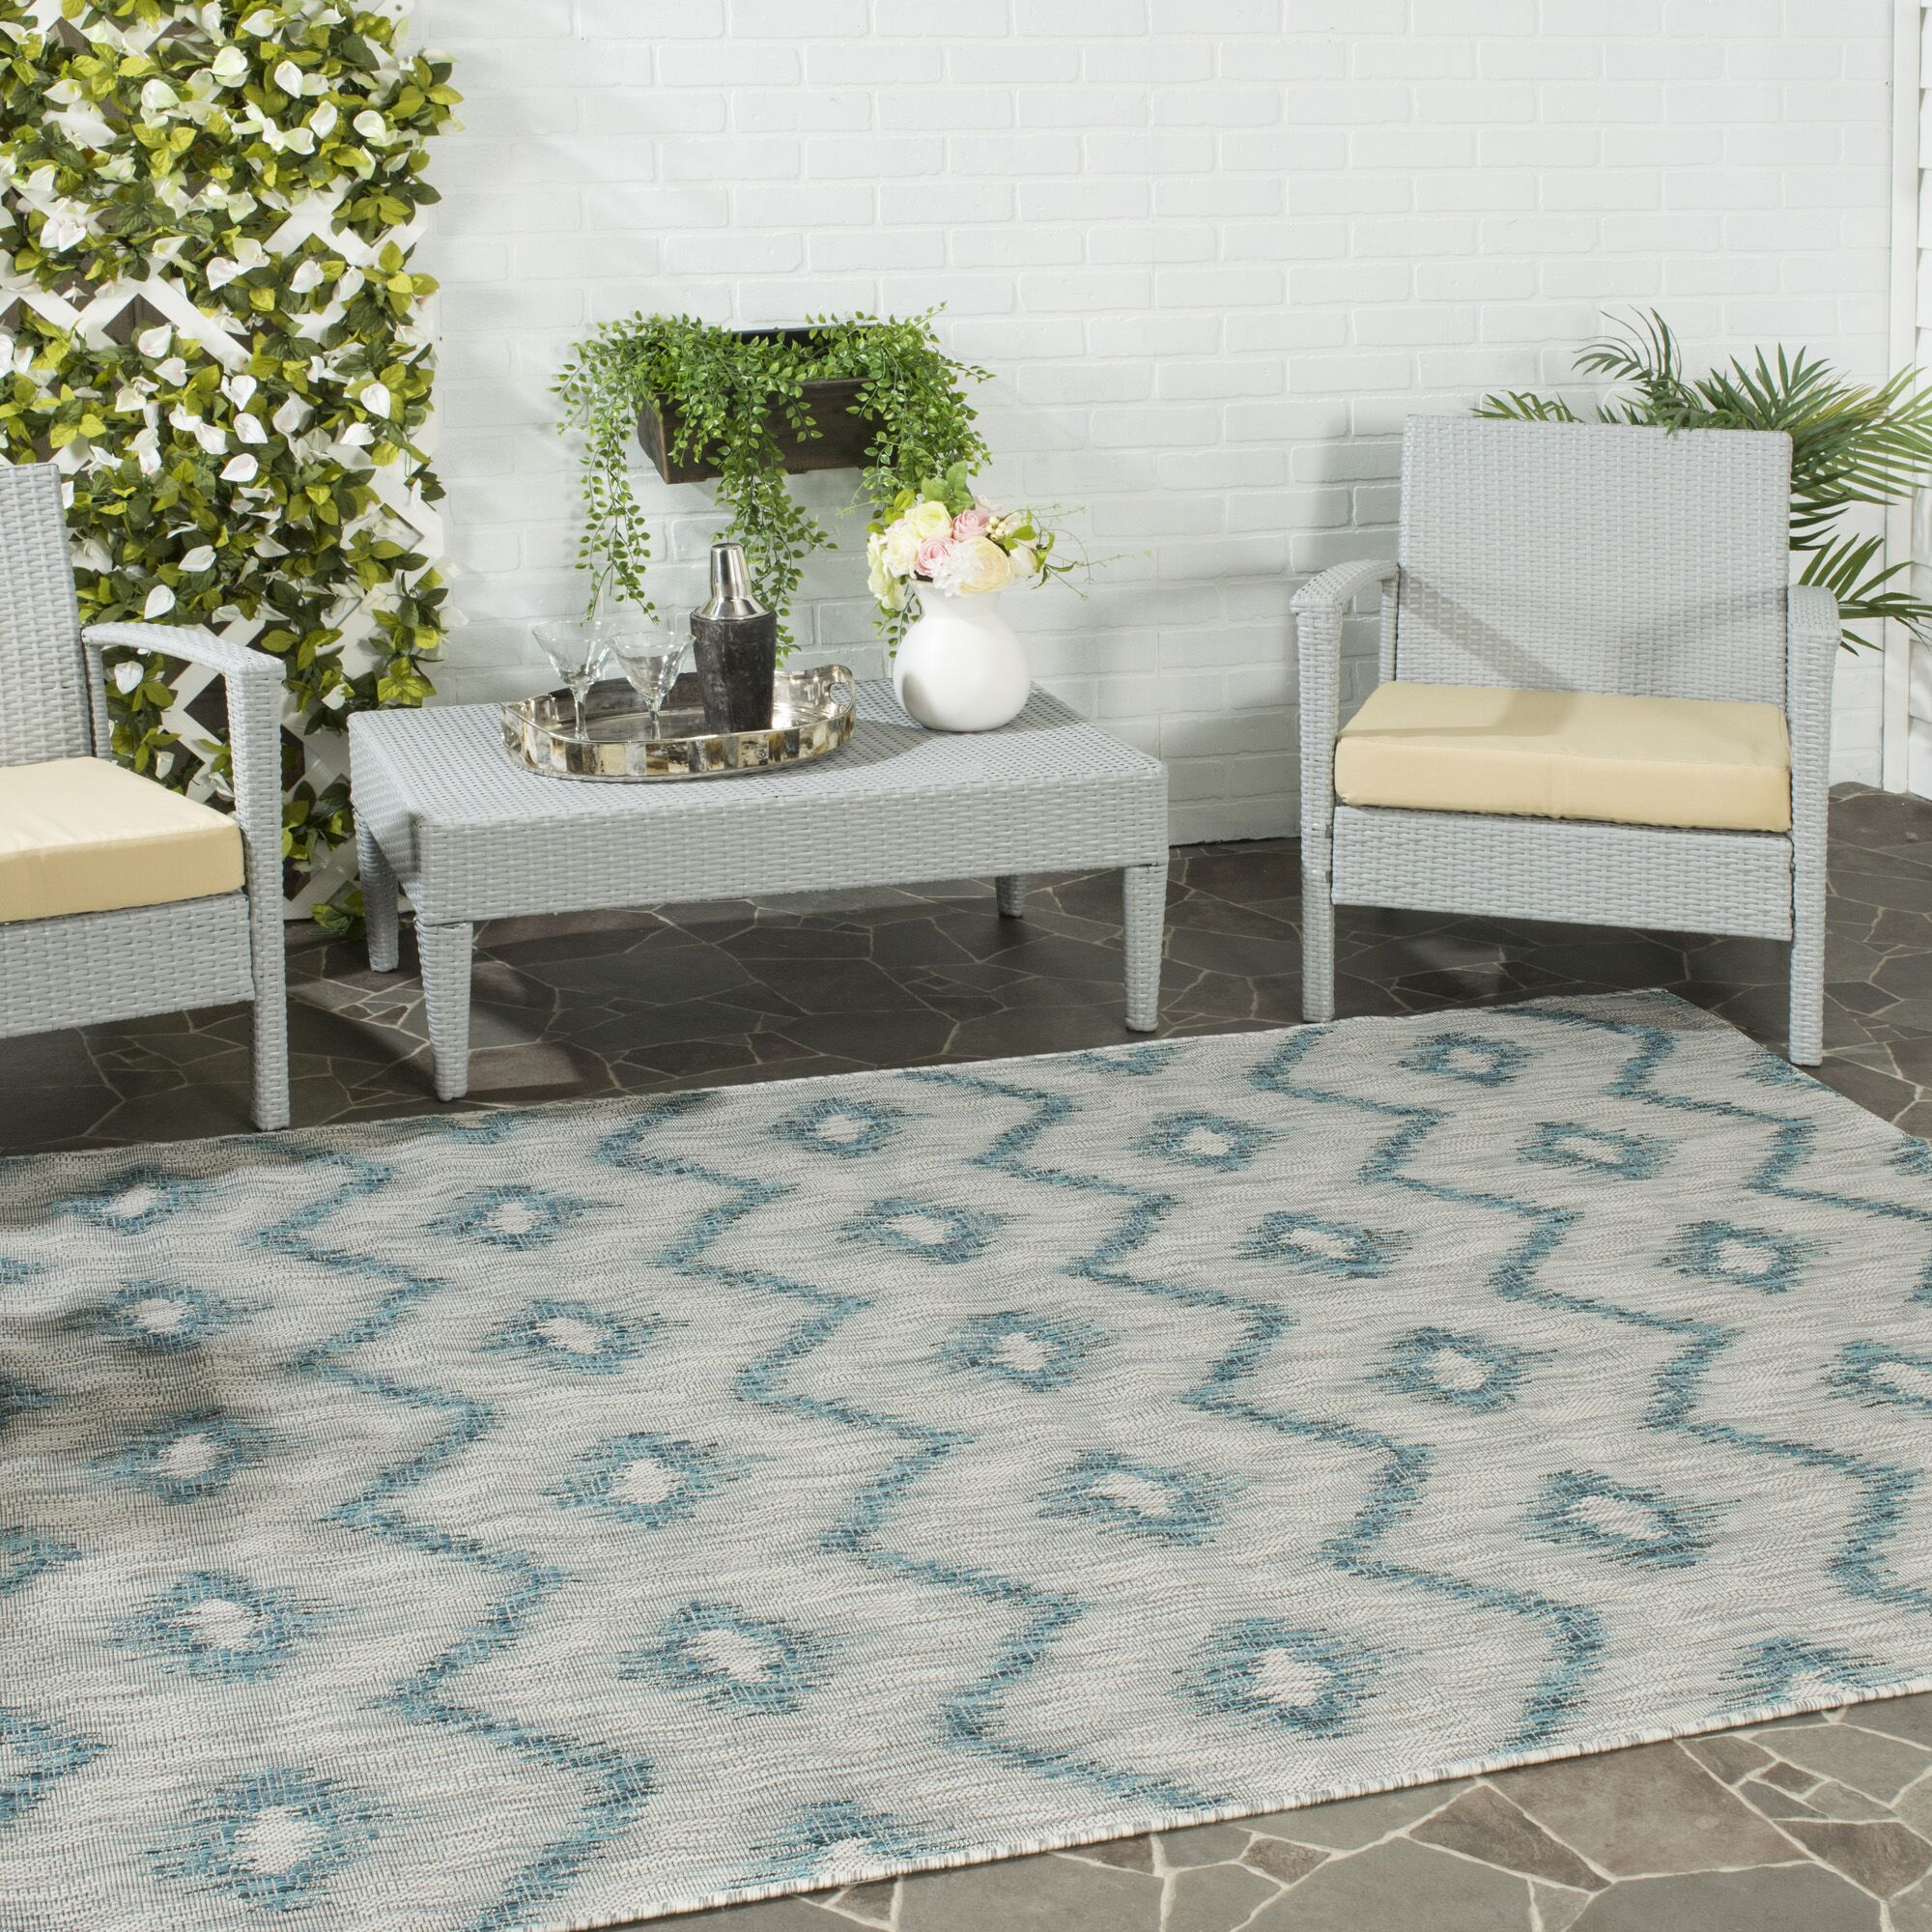 Mcguffin Gray/Blue Indoor/Outdoor Area Rug Rug Size: Rectangle 5'3